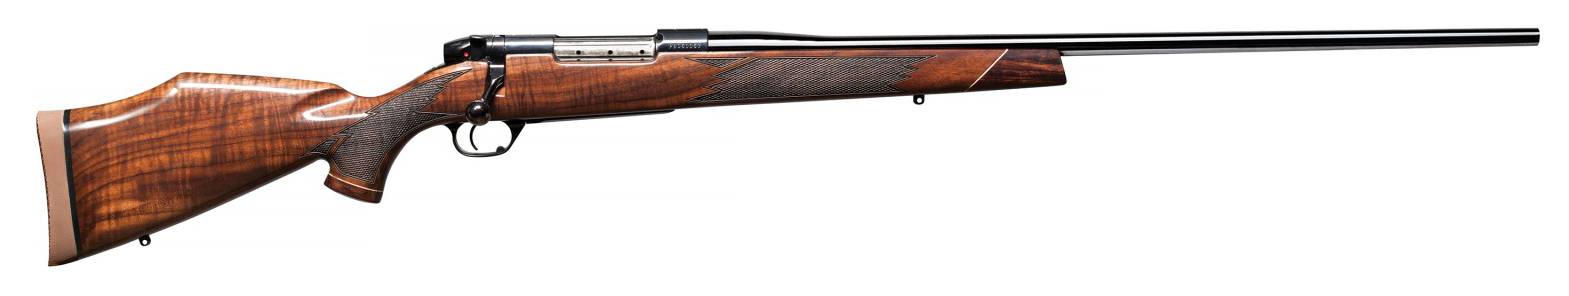 Weatherby MDXM340WR6O Mark V Deluxe Bolt 340 Weatherby Magnum 26